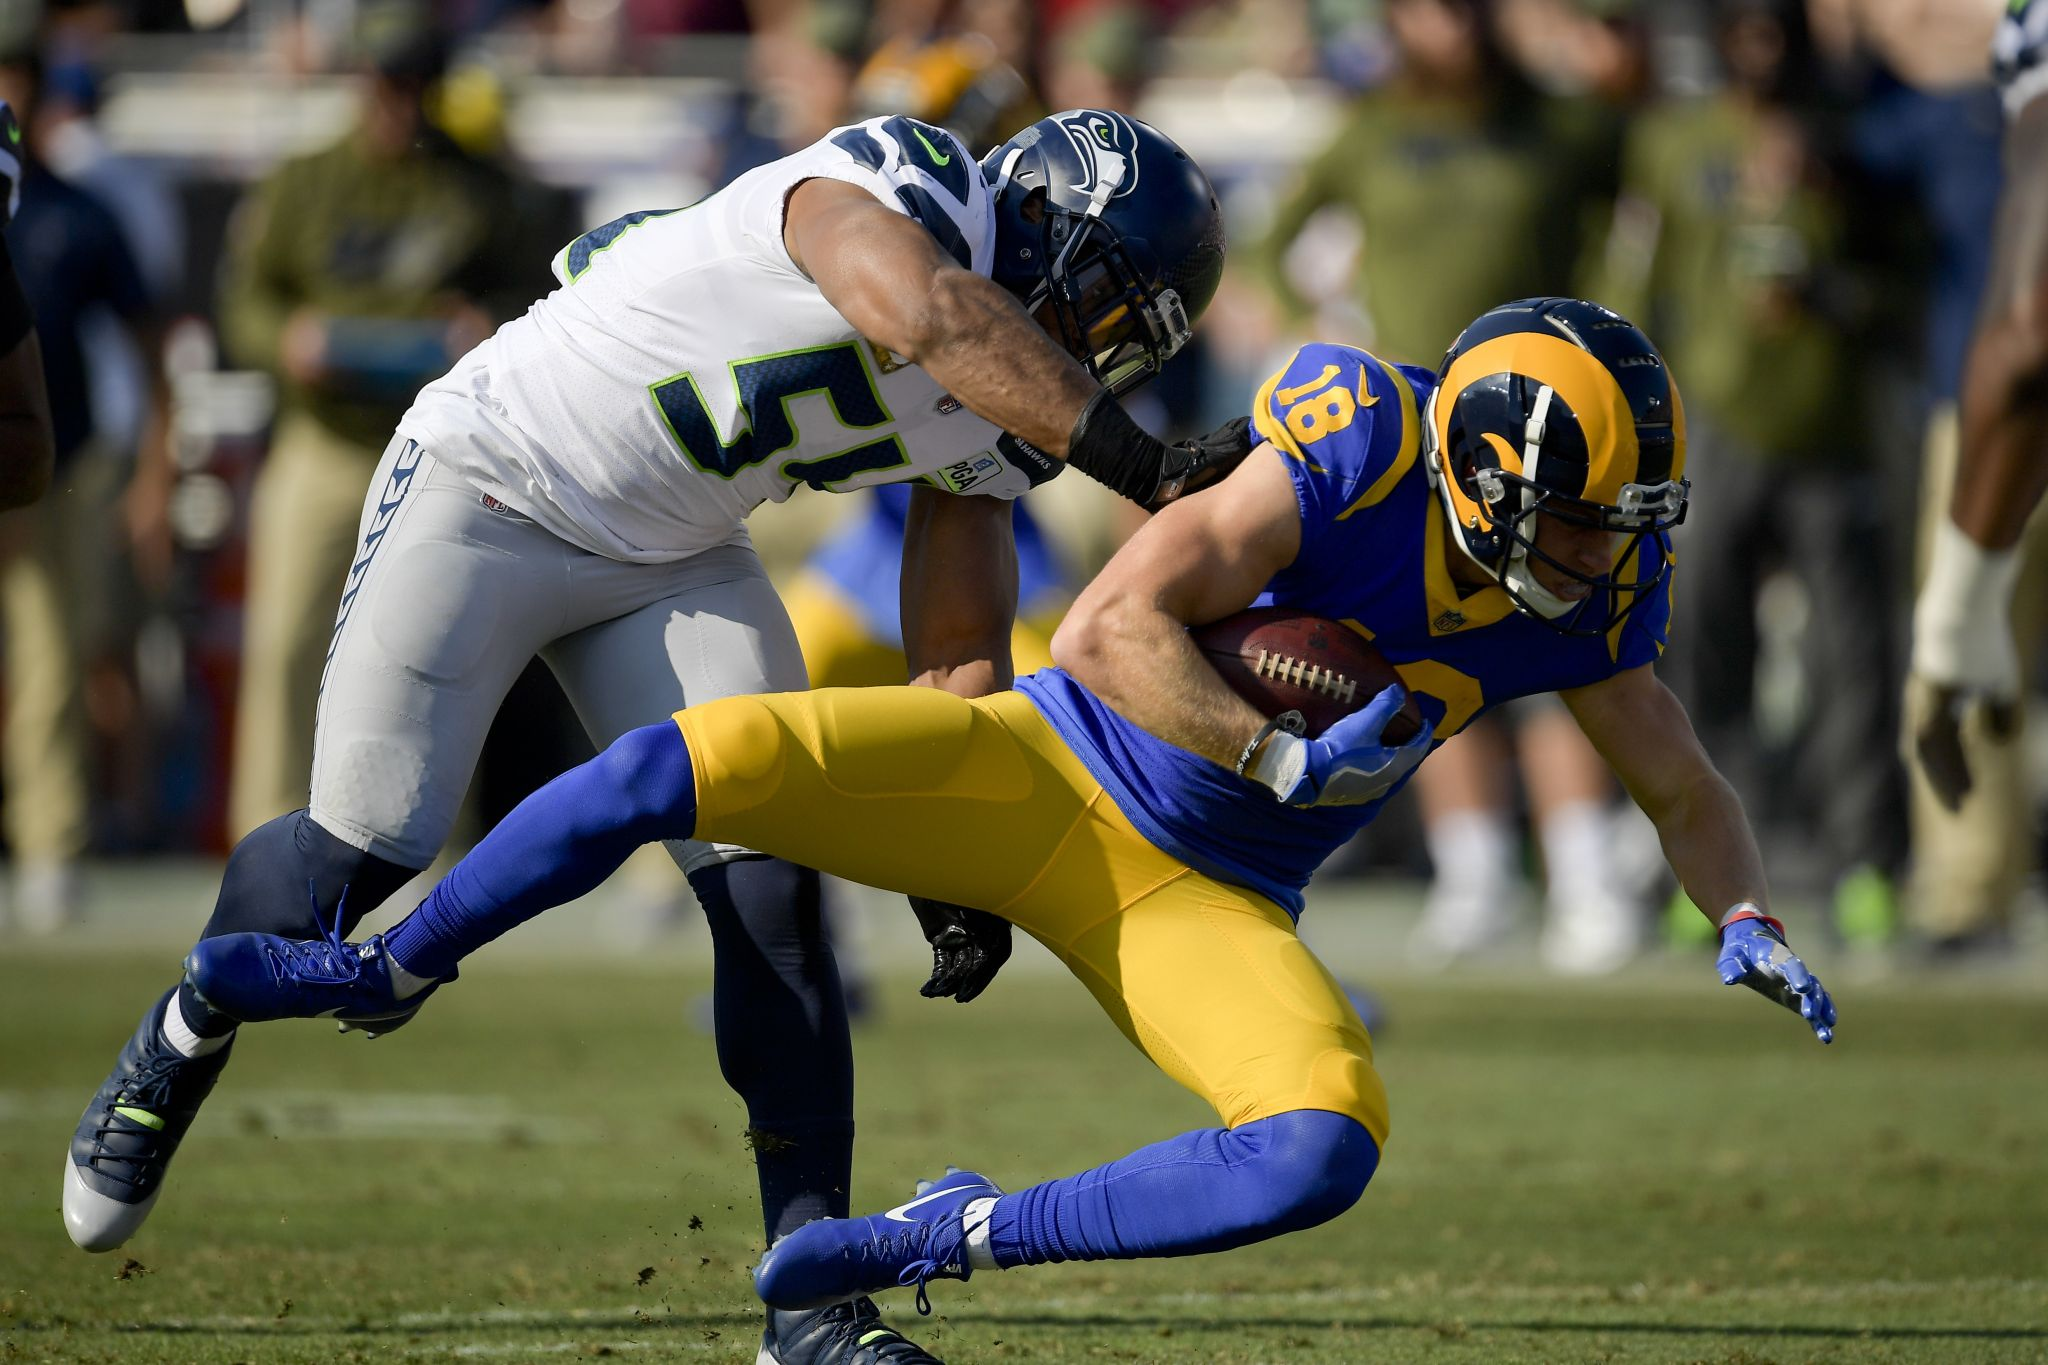 NFC West Preview: Can the Seahawks beat out the Rams for No. 1 in the division?